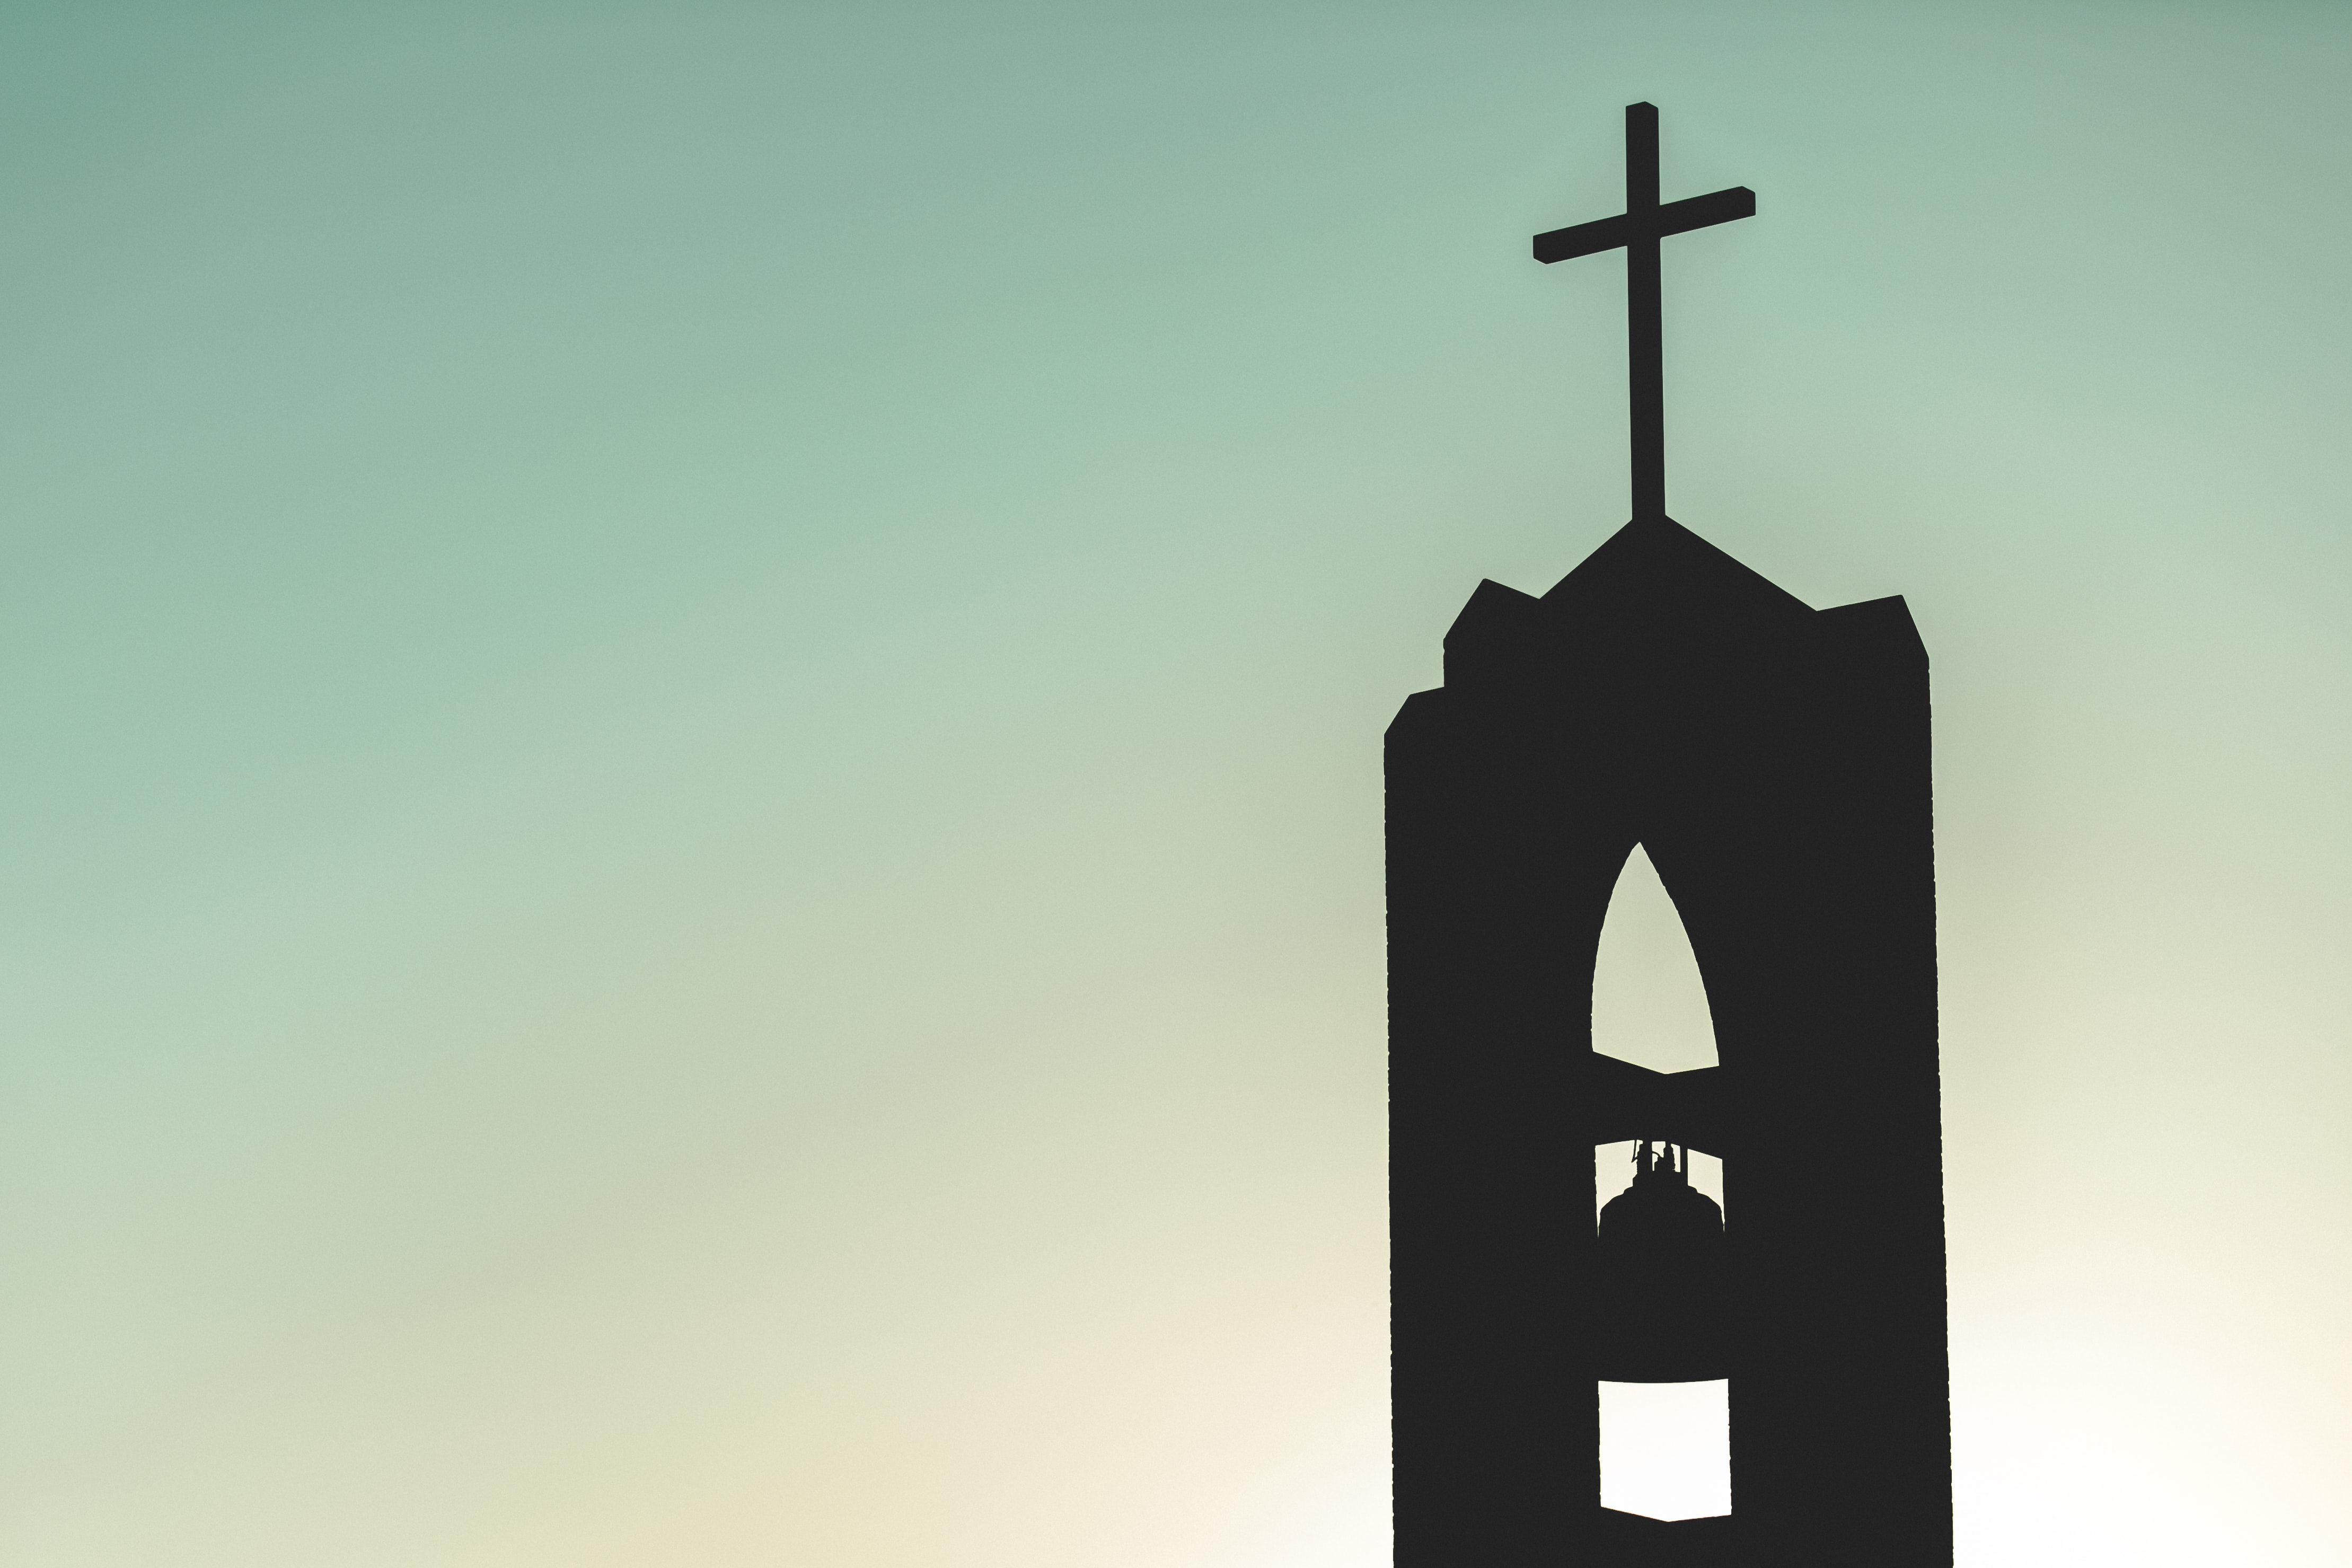 silhouette photo of church bell